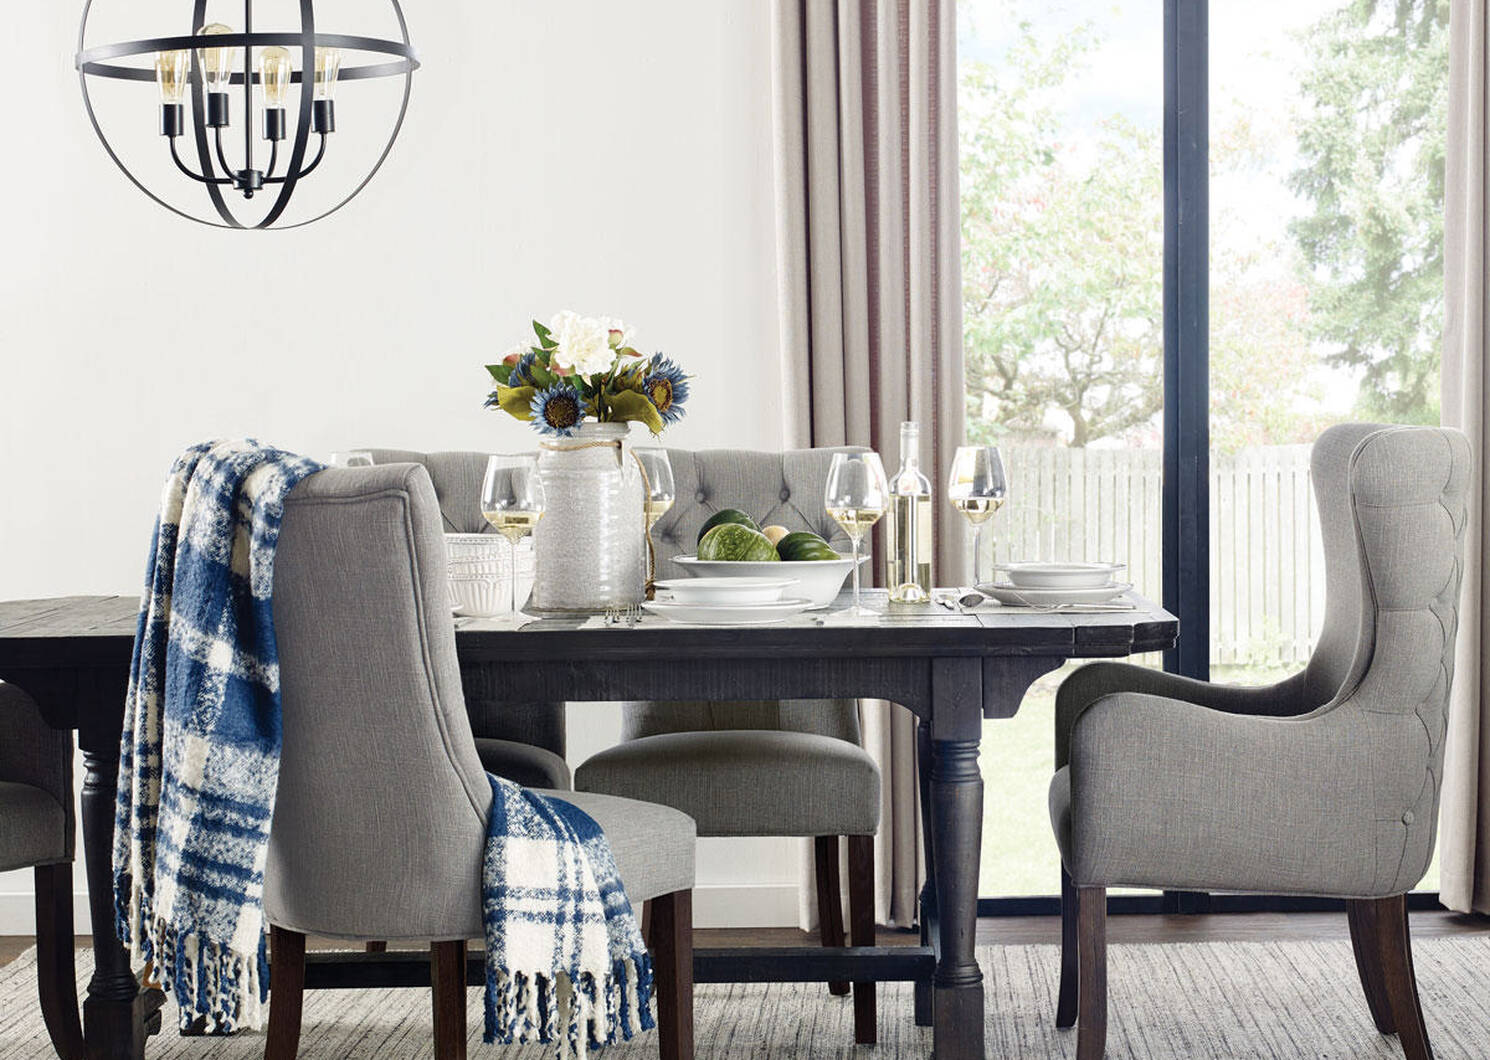 Interior decorating dining chairs